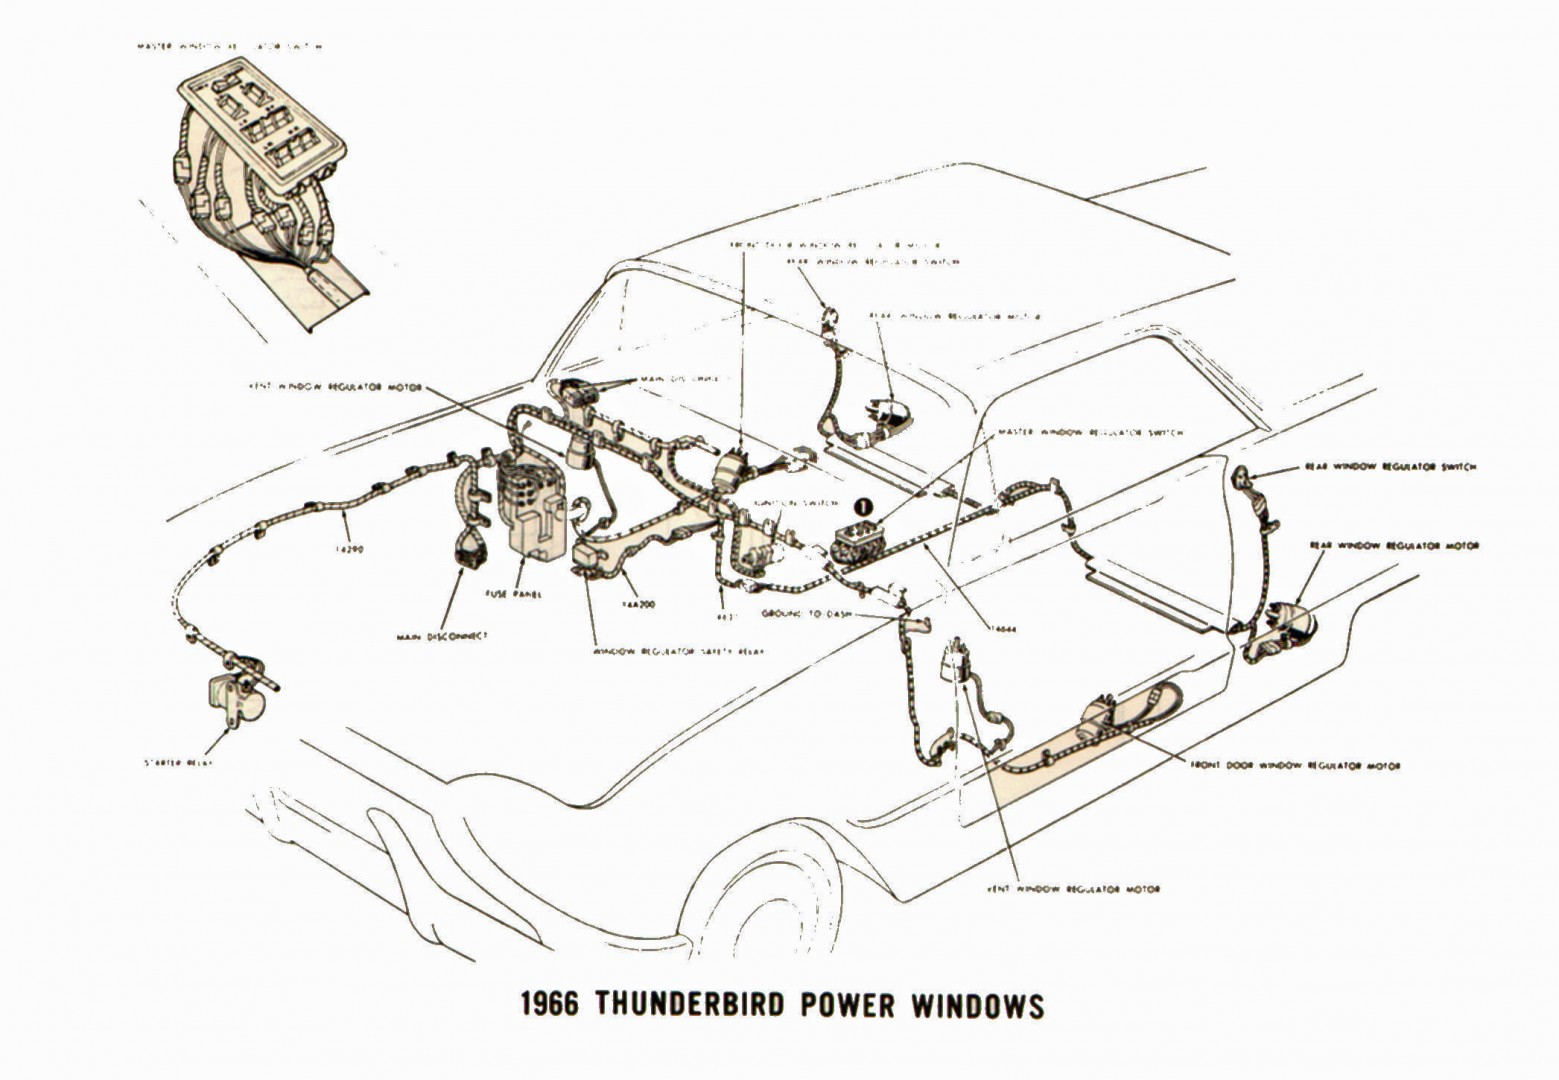 1966 Ford Thunderbird power windows ford thunderbird shop manuals 1965 ford thunderbird wiring diagram at crackthecode.co